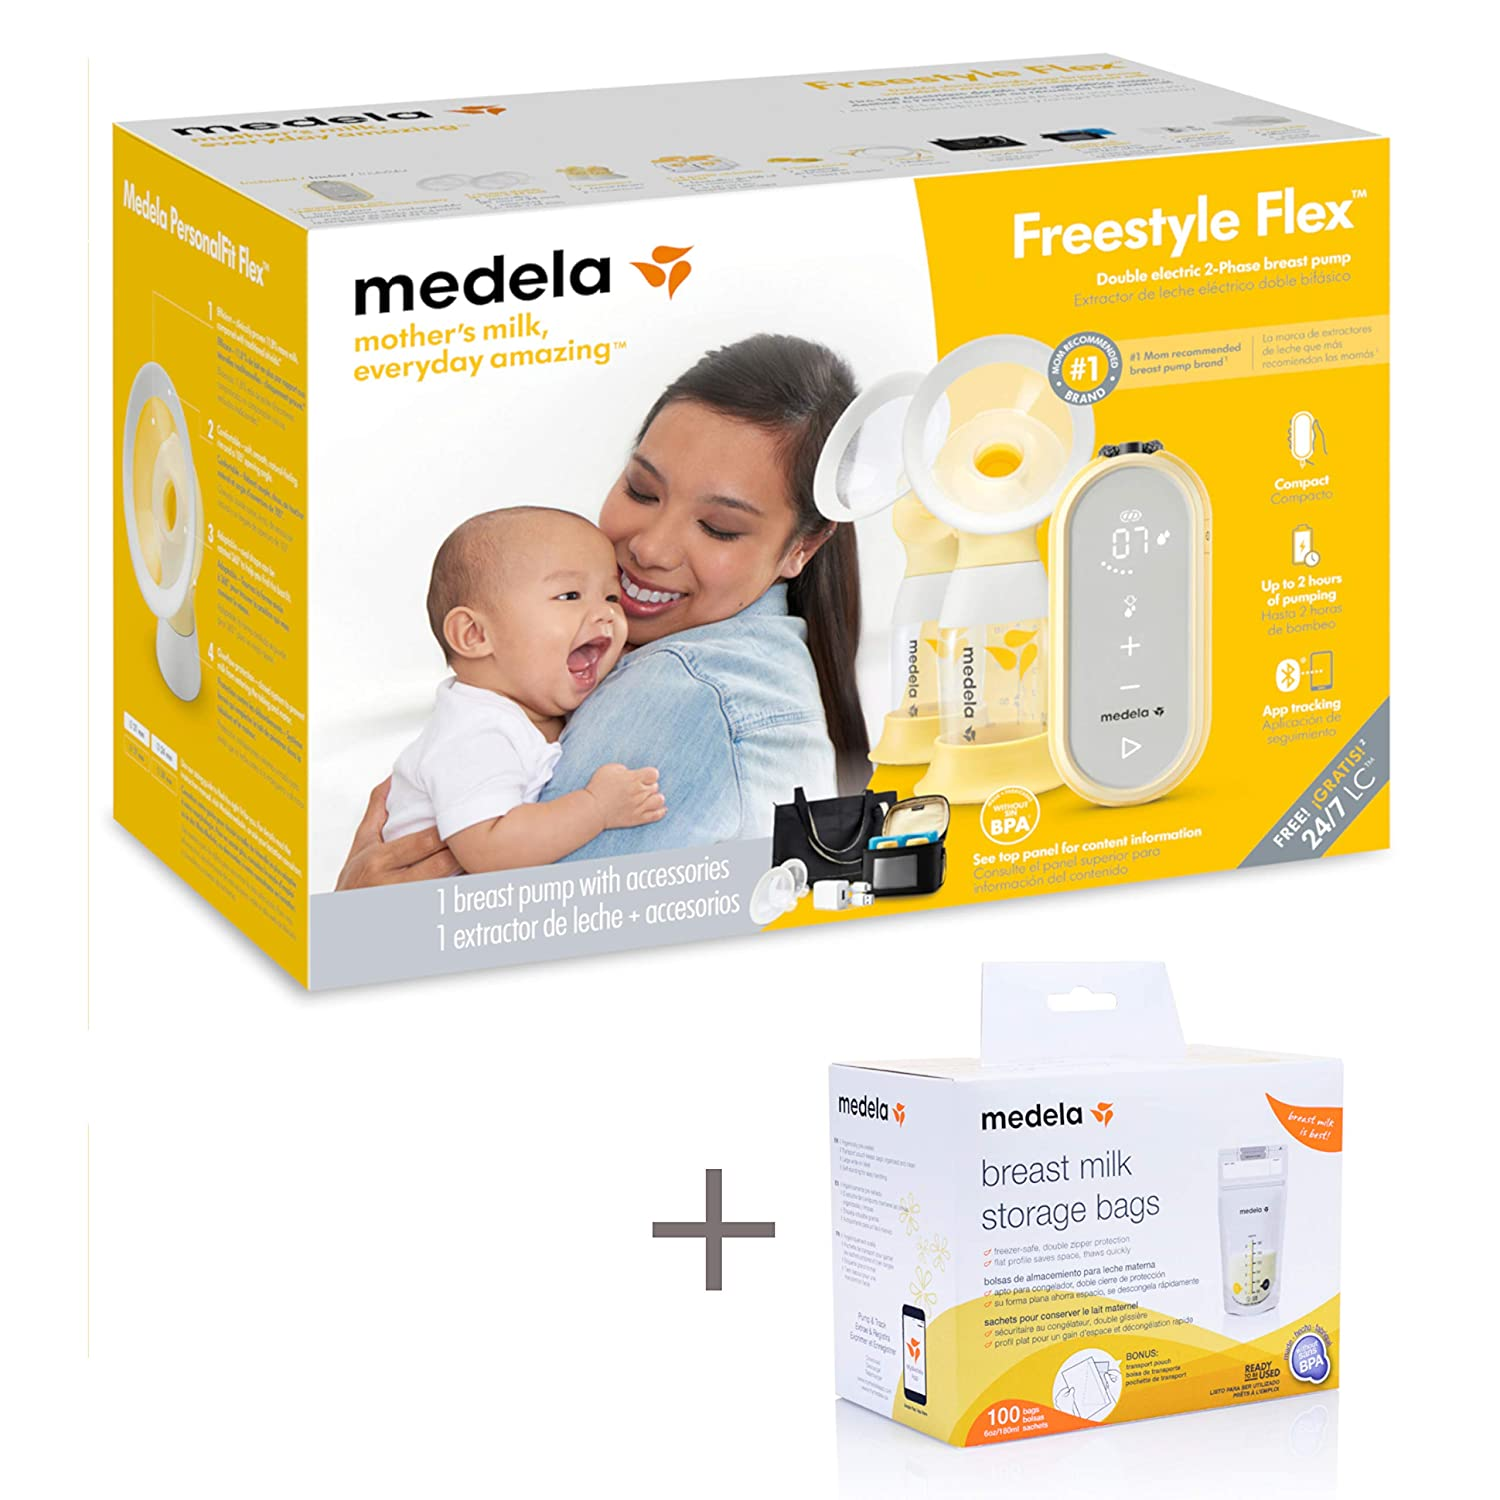 Closed System Quiet Handheld Portable Double Electric Breastpump Medela Freestyle Flex Breast Pump with Bonus 100 Breast Milk Storage Bags Mobile Connected Smart Pump with Touch Screen LED Display